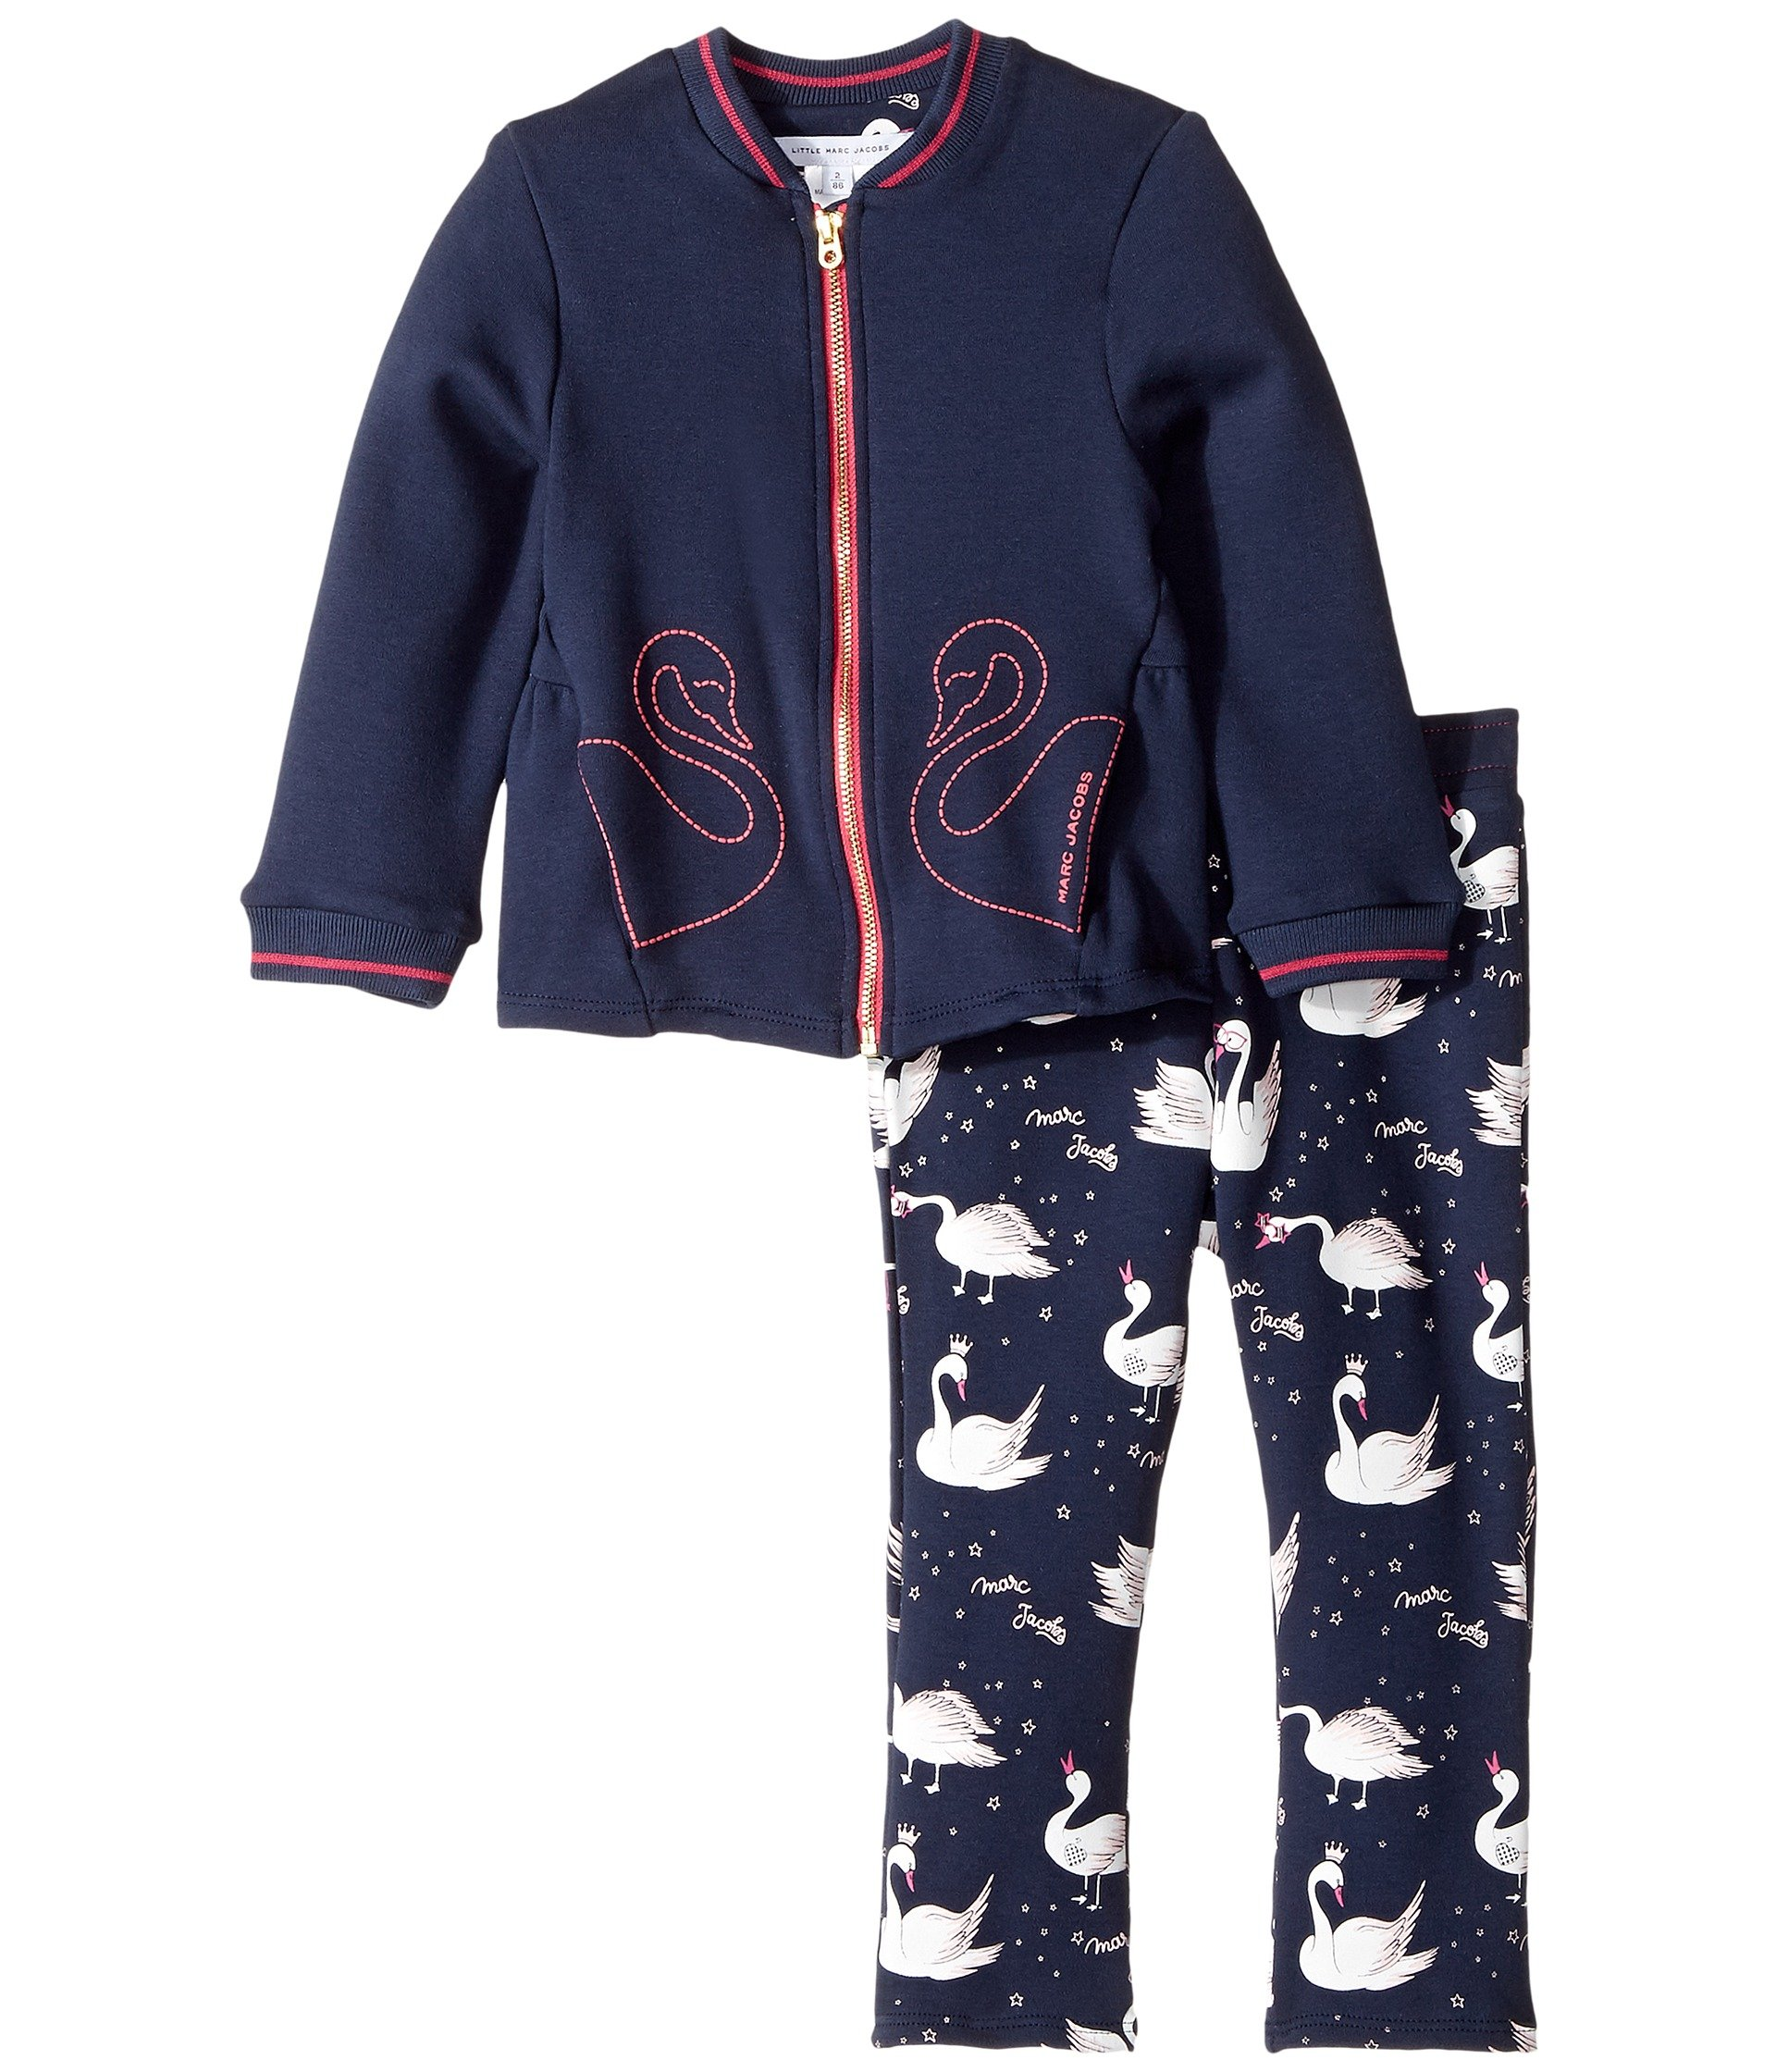 Little Marc Jacobs Baby Girls' 2 Pcs Jacket and Trousers Toddler, Dark Indigo, 2 Year